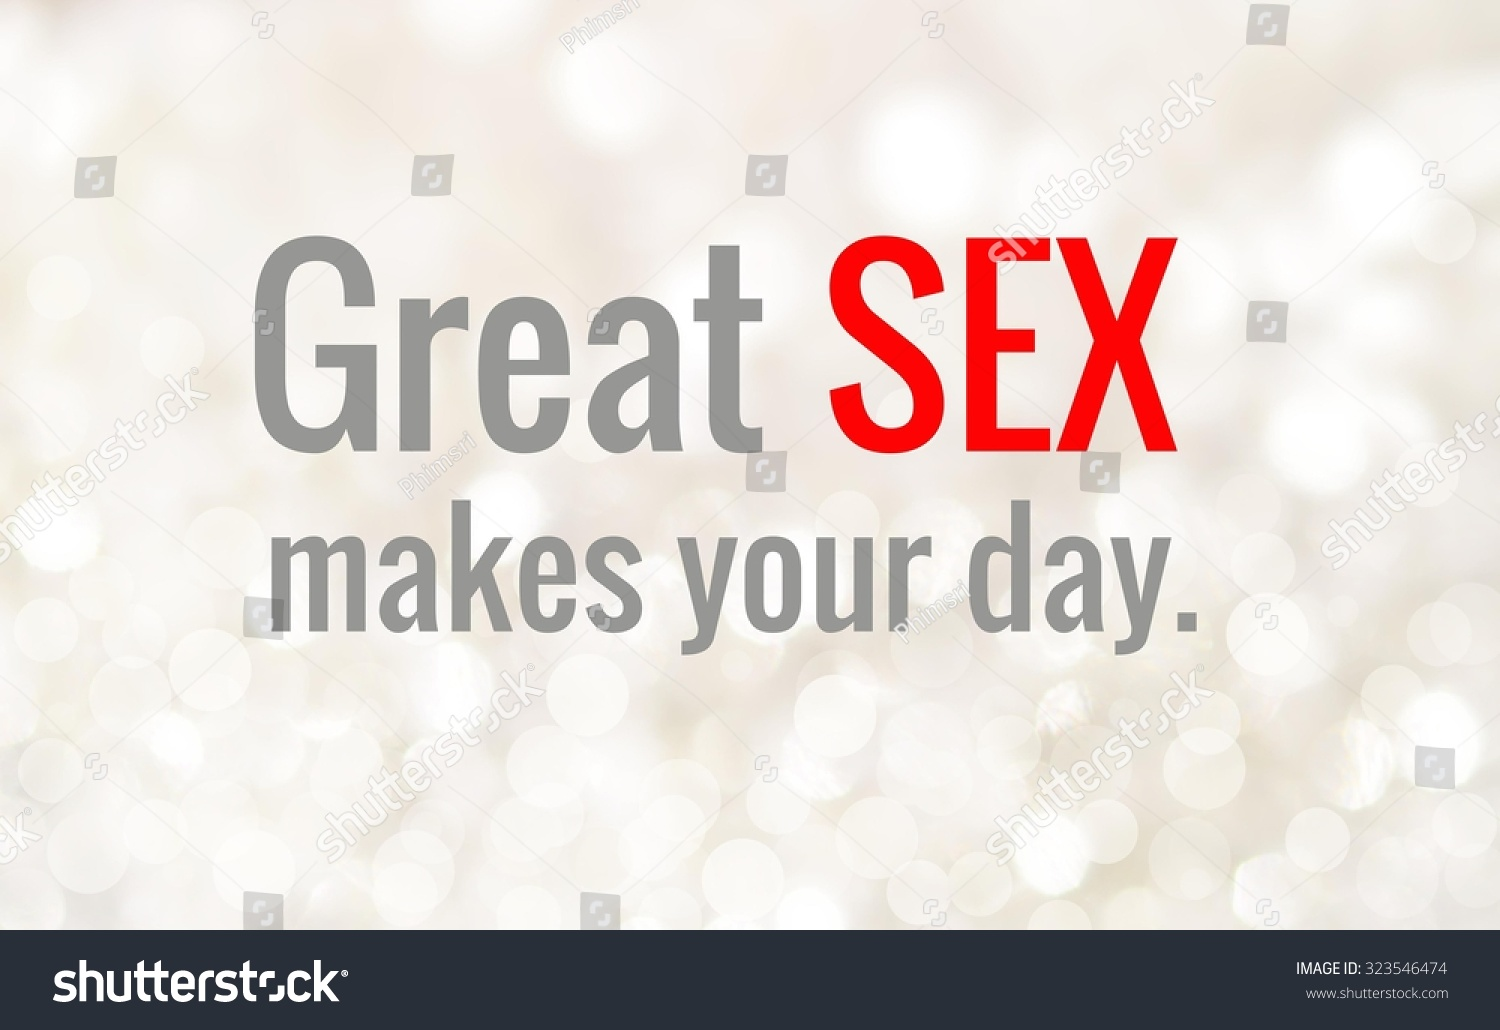 what makes great sex